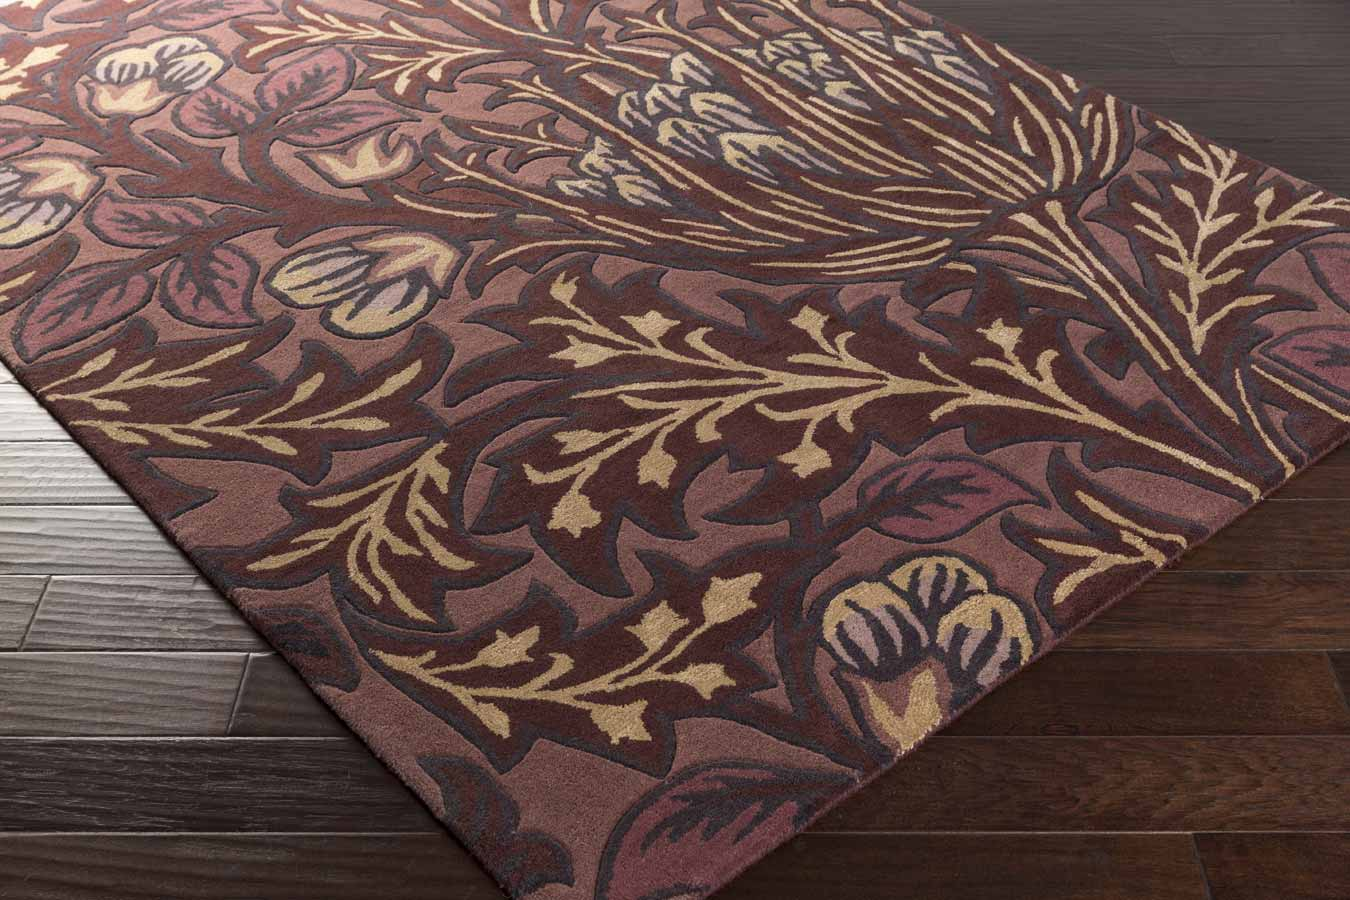 Surya William Morris Wlm3006 Rug